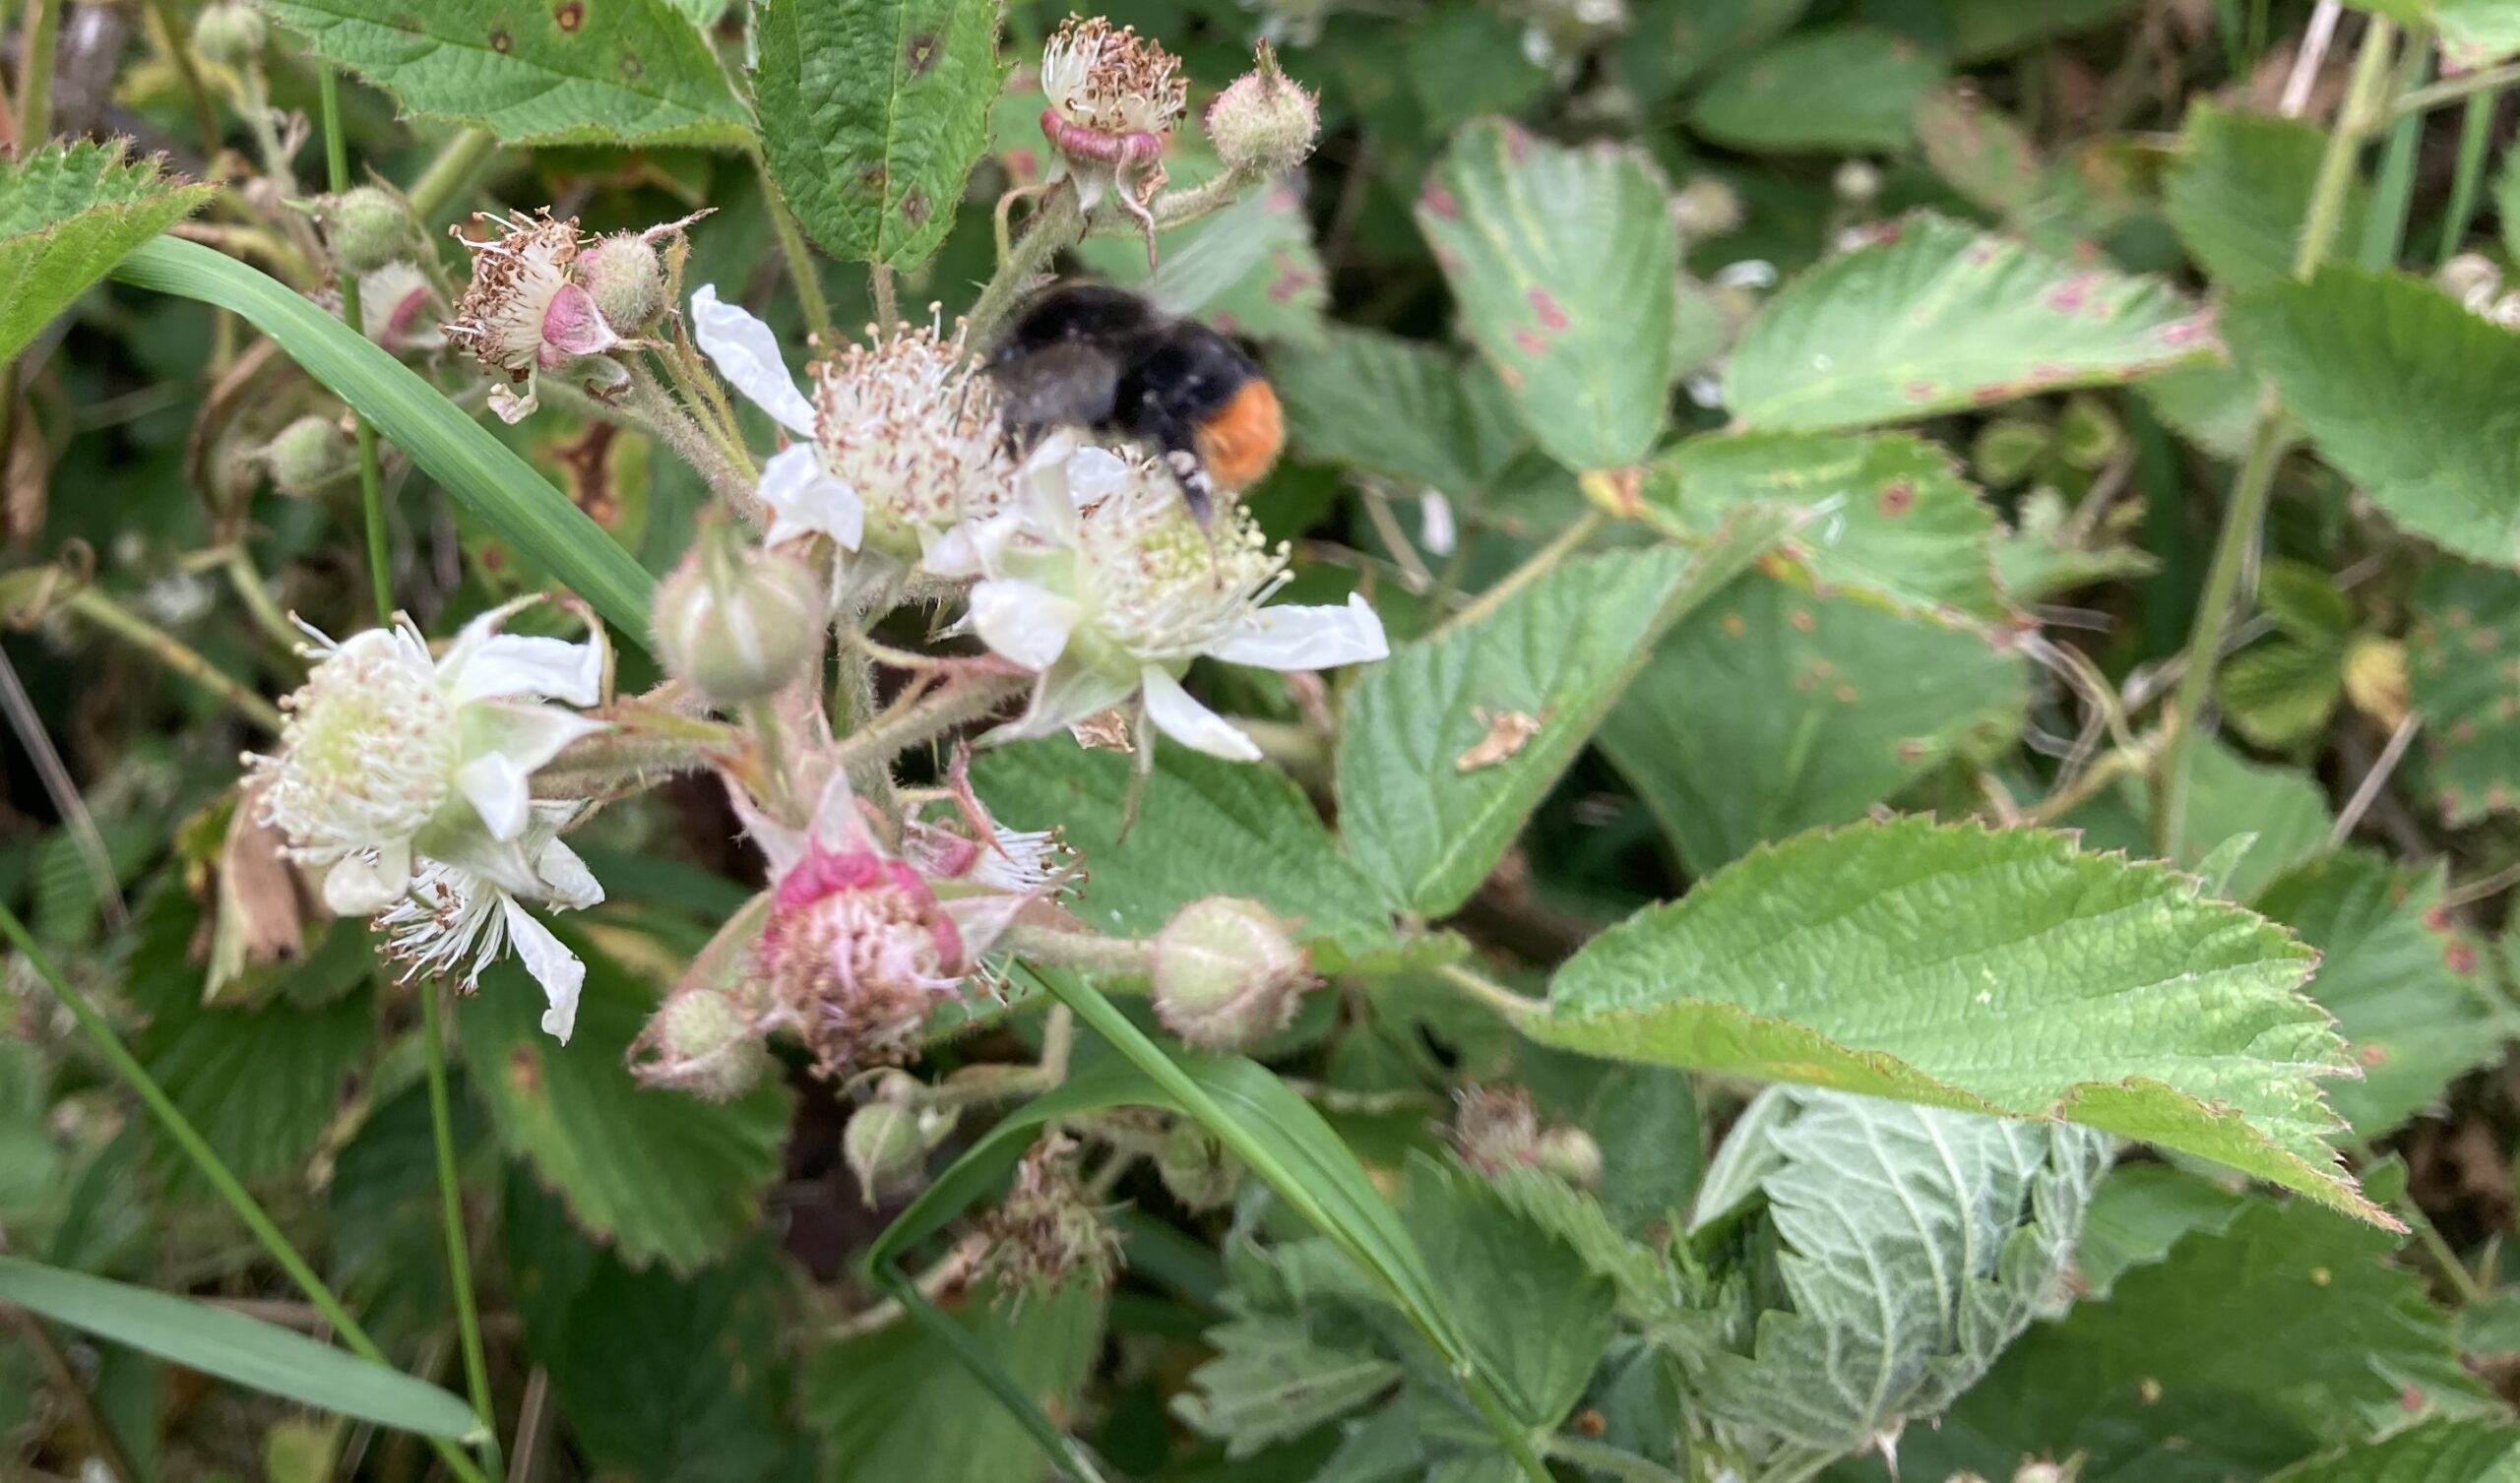 Red tailed bumble bee on bramble